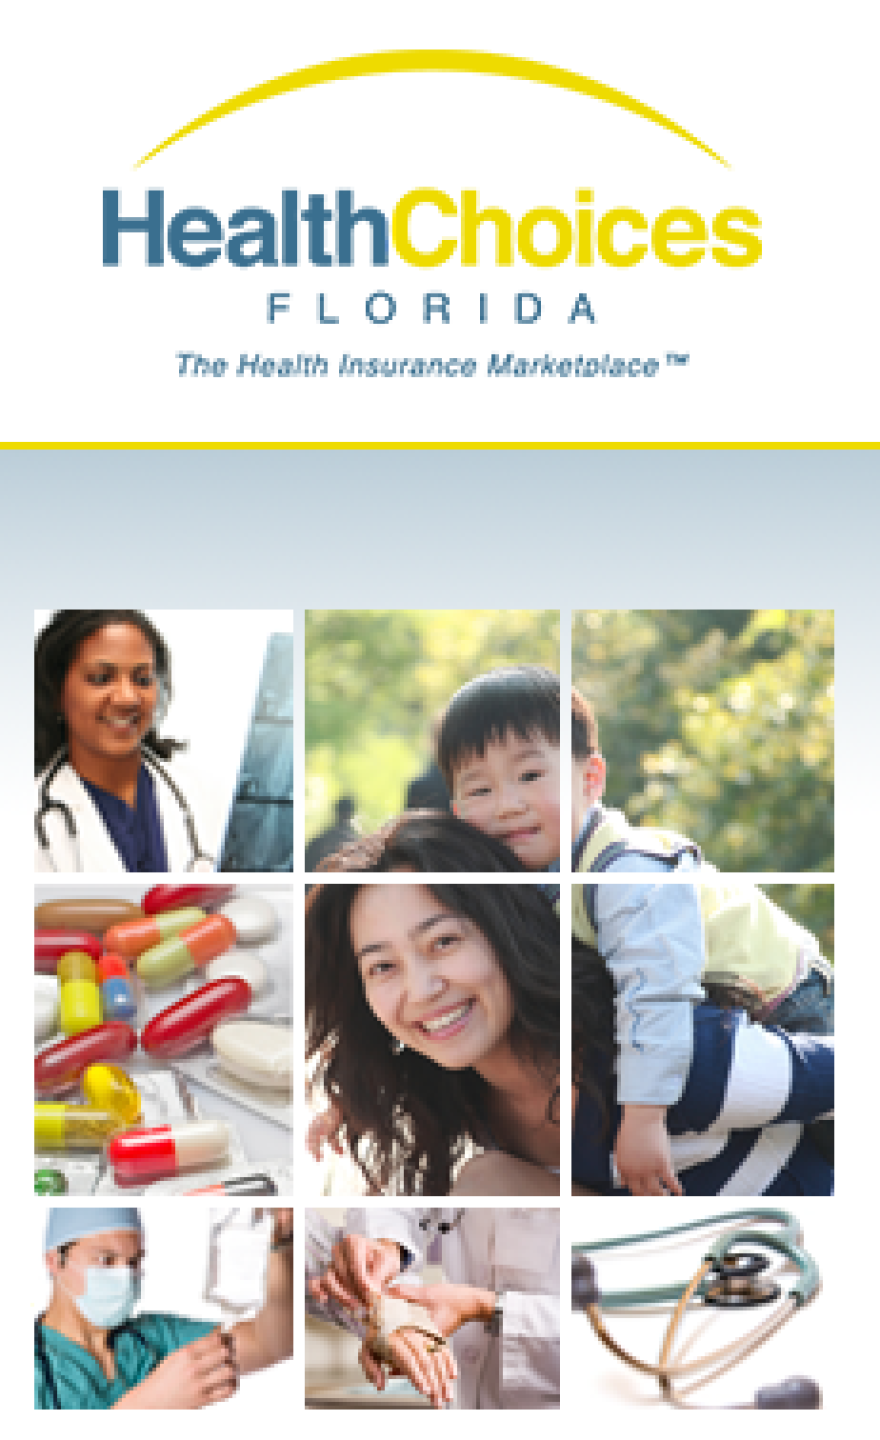 Florida Health Choices launched in March 2014 and had only attracted 34 people by September.